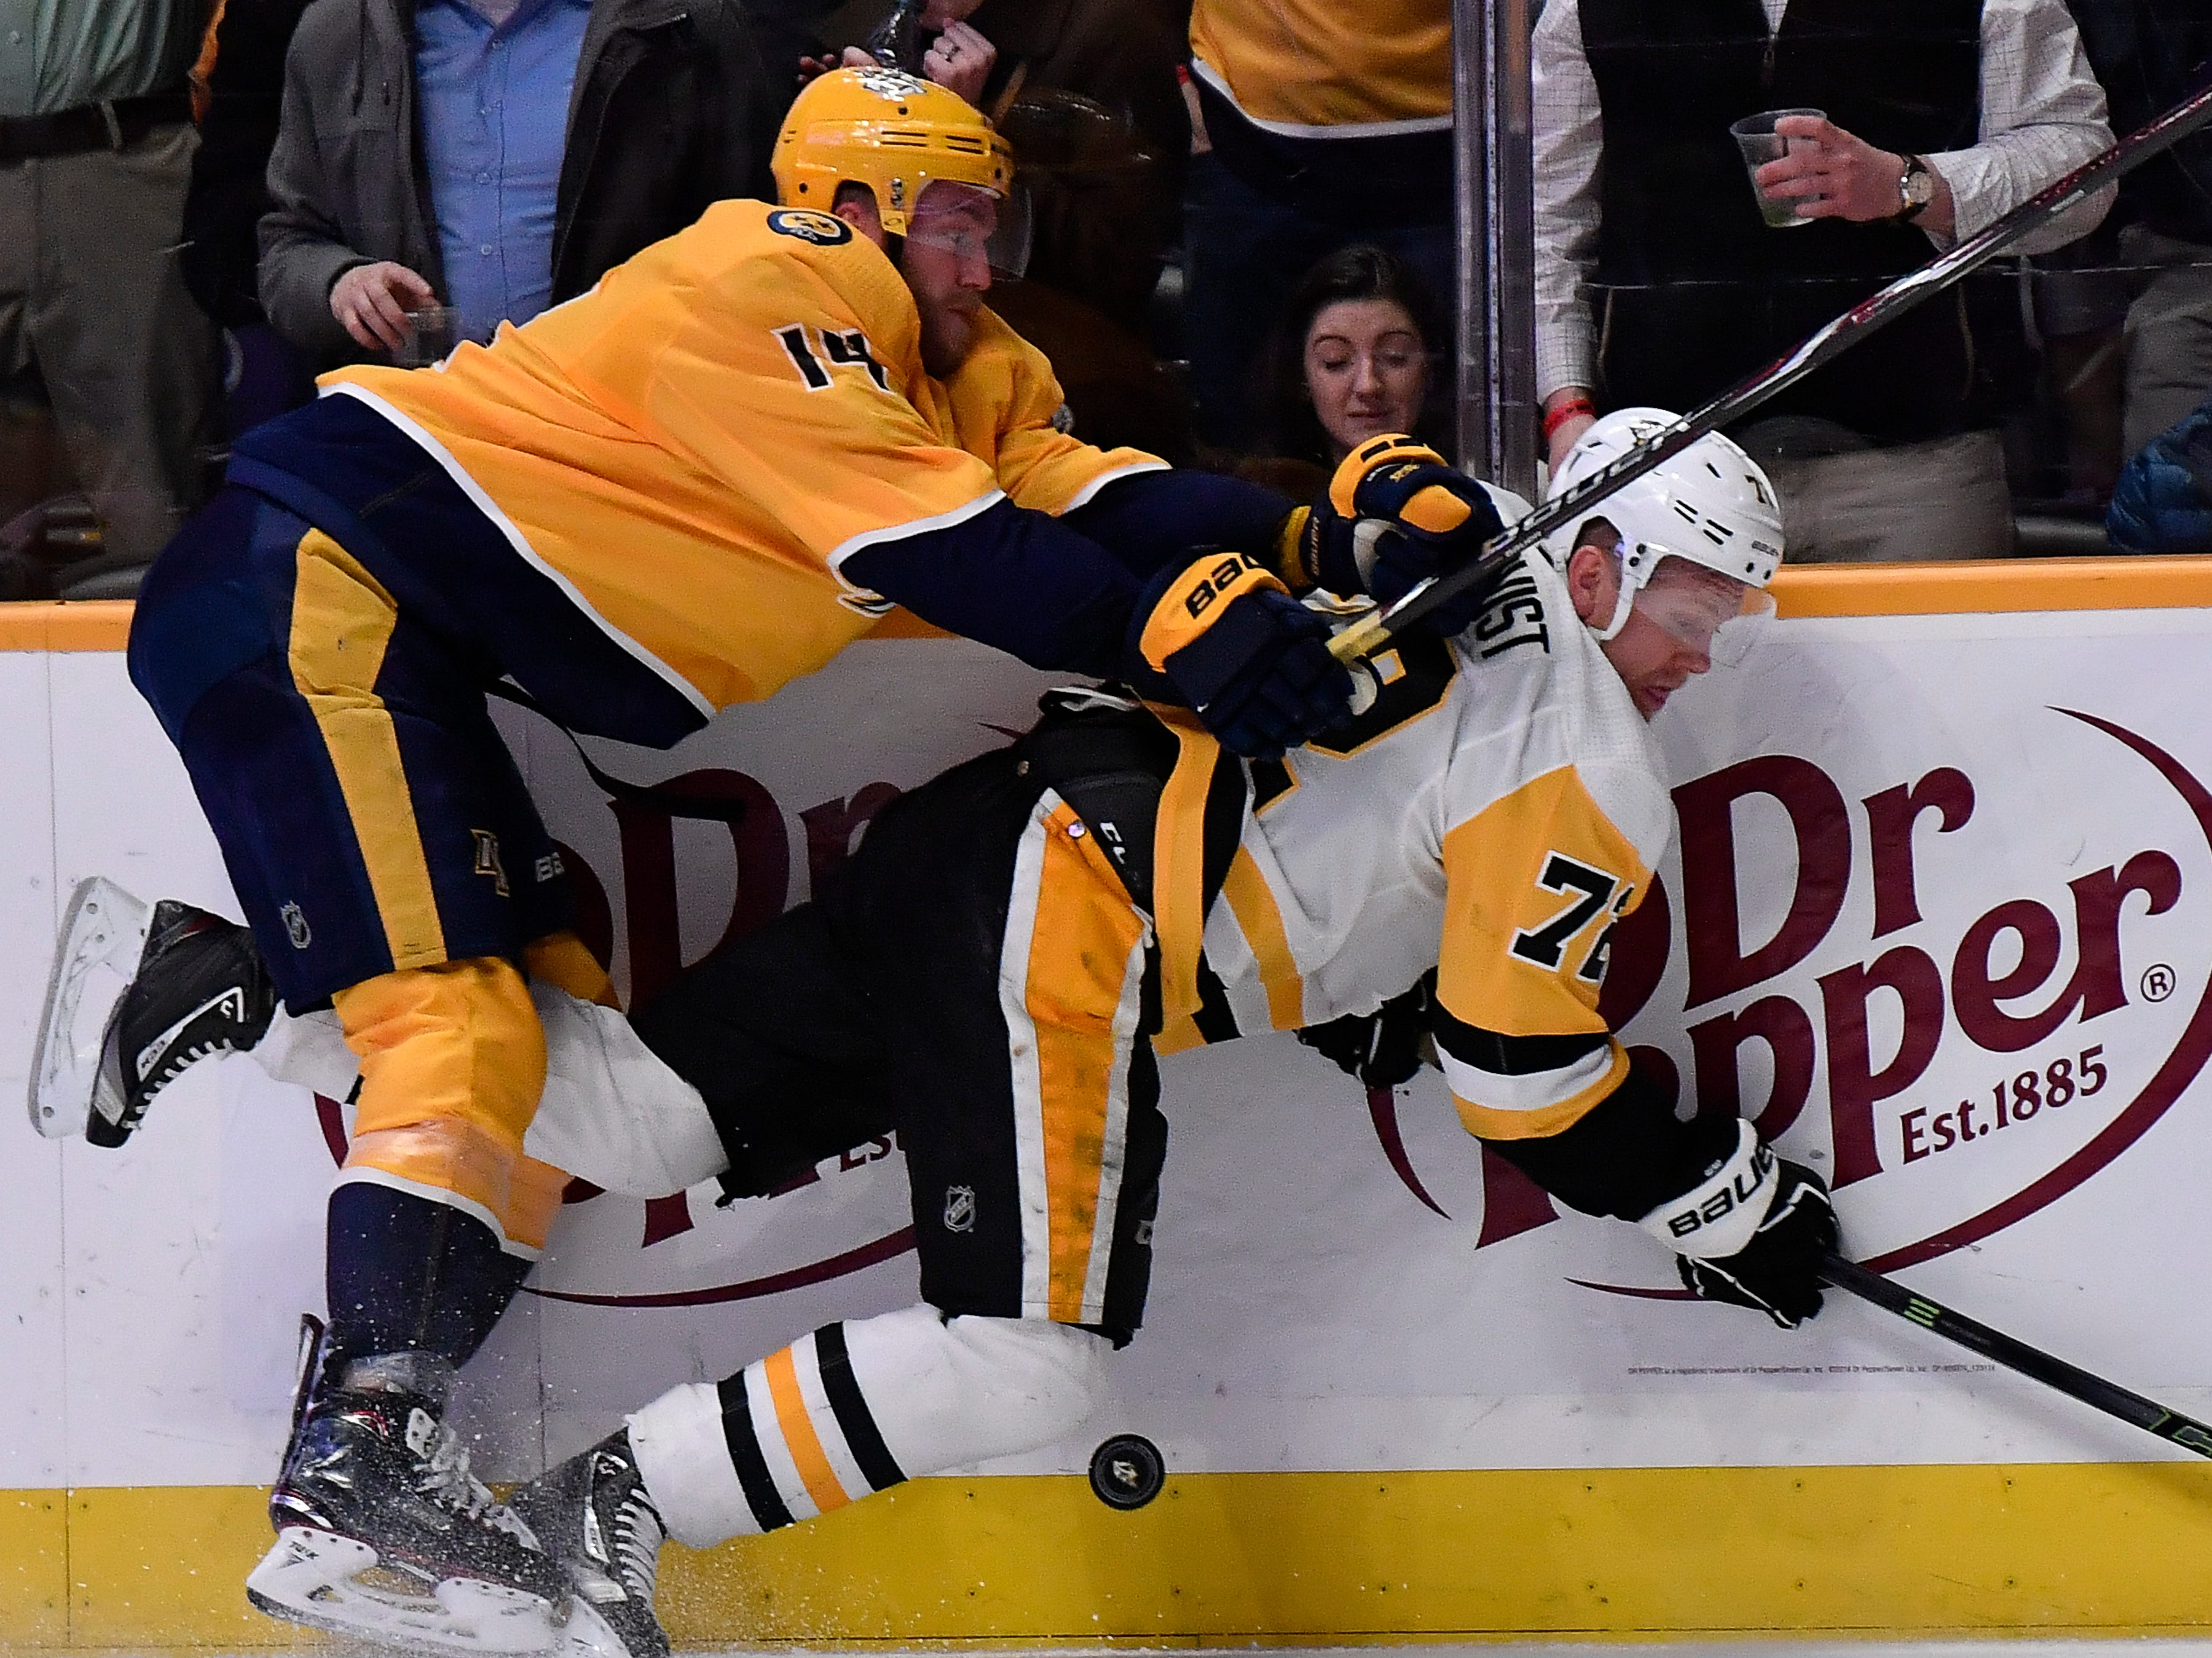 Predators defenseman Mattias Ekholm (14) pounds Penguins right wing Patric Hornqvist (72) into the ice during the third period at Bridgestone Arena Thursday, March 21, 2019 in Nashville, Tenn.